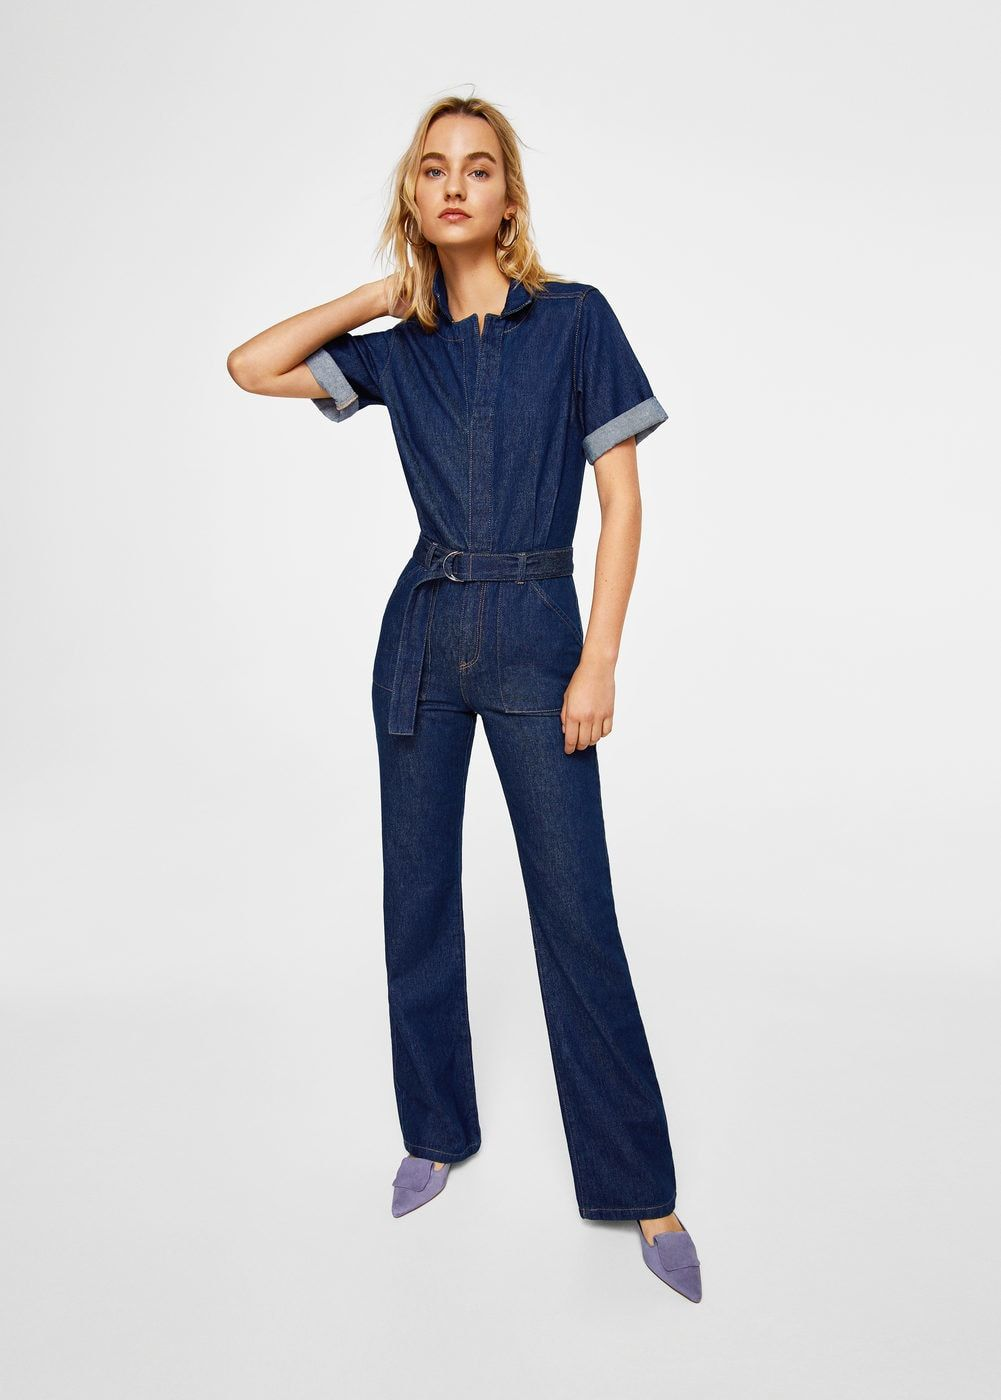 Awesome Jumpsuits and Dungarees for 2019 36